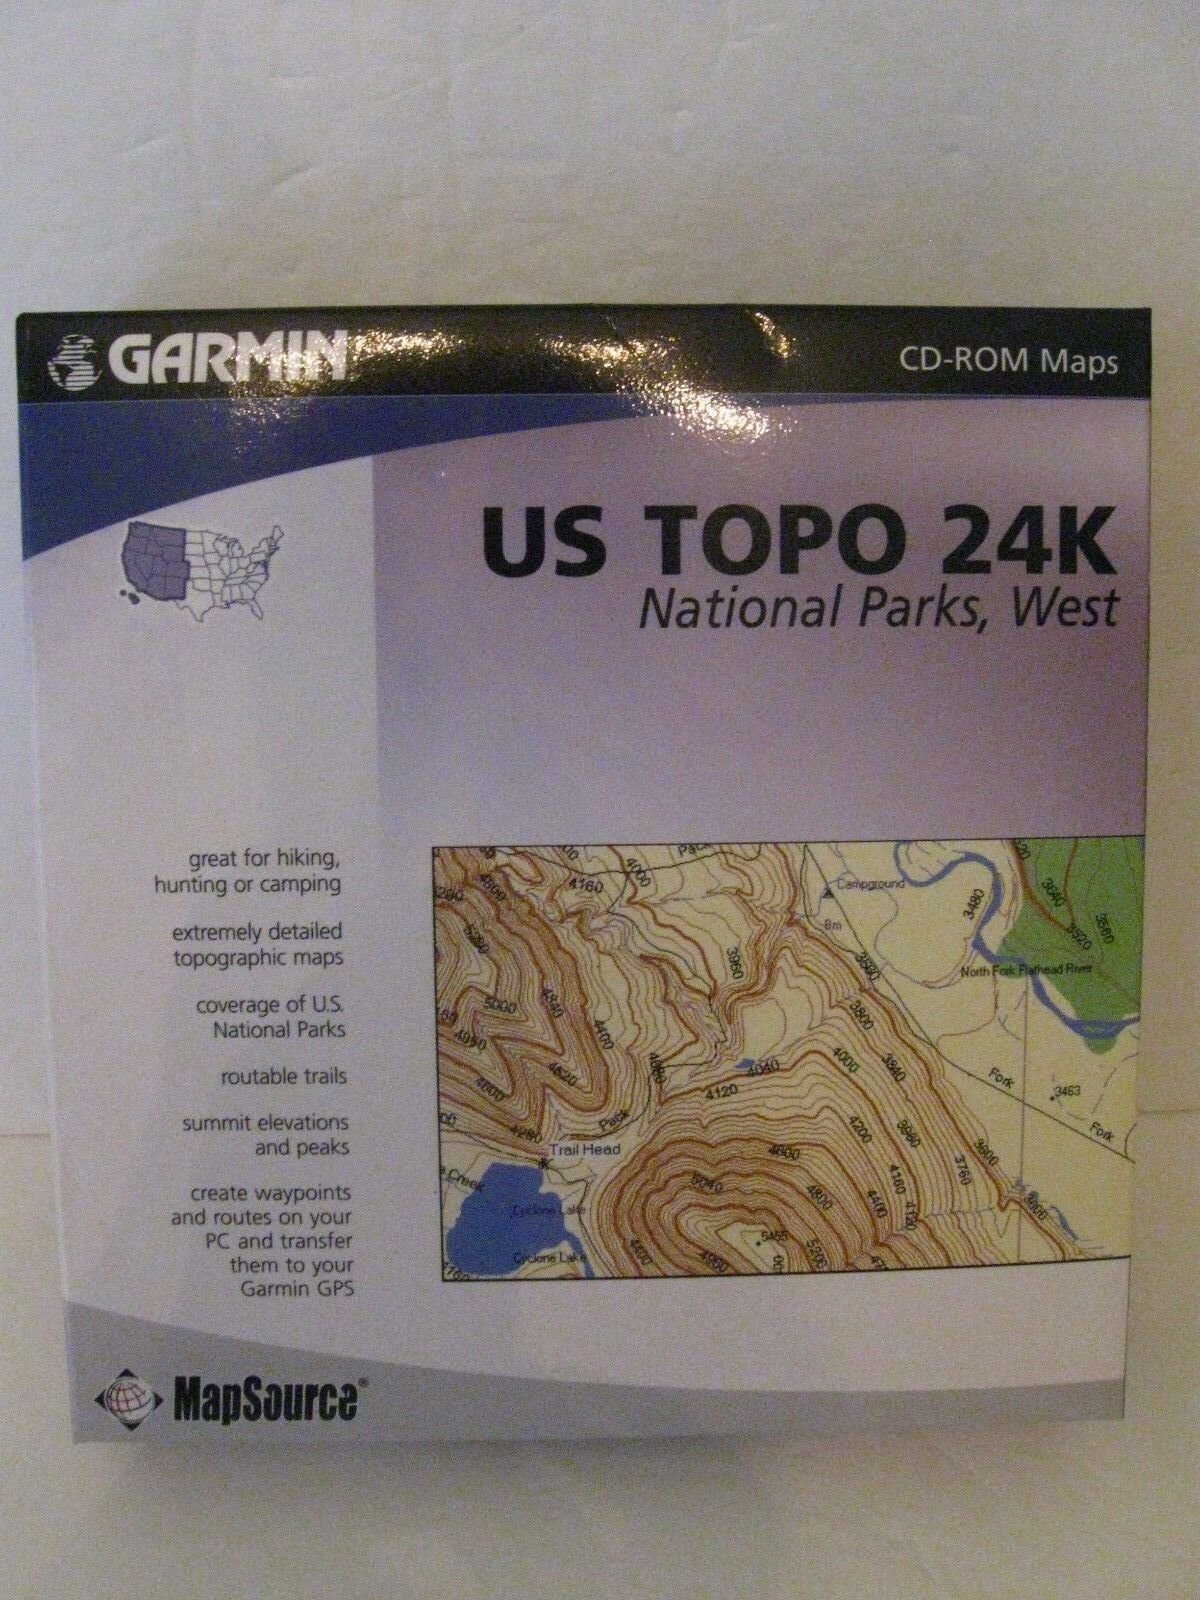 Garmin US Topo 24k National Parks West CDROM